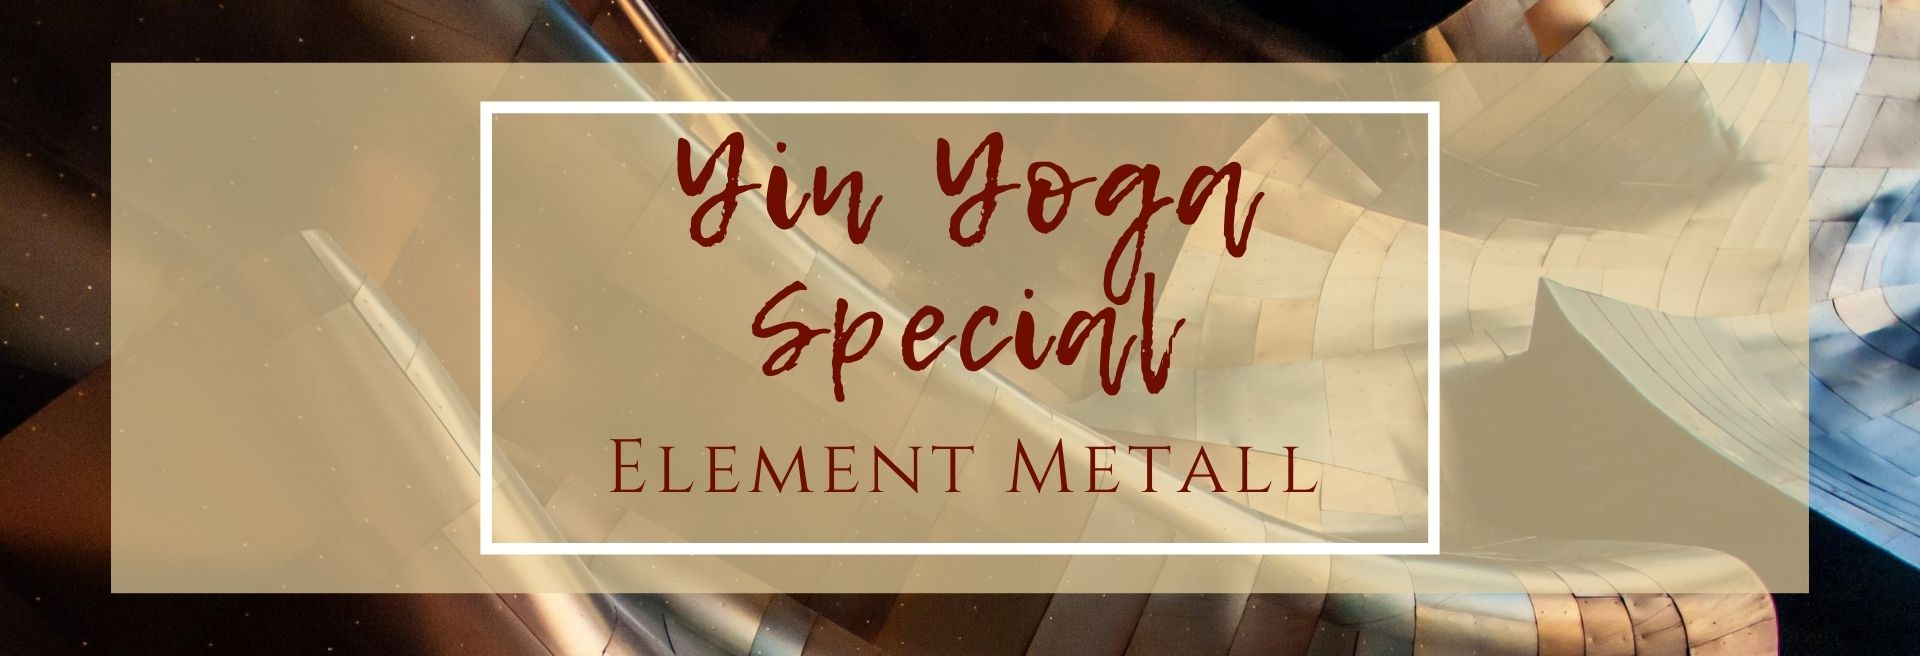 Yin Yoga Special Element Metall